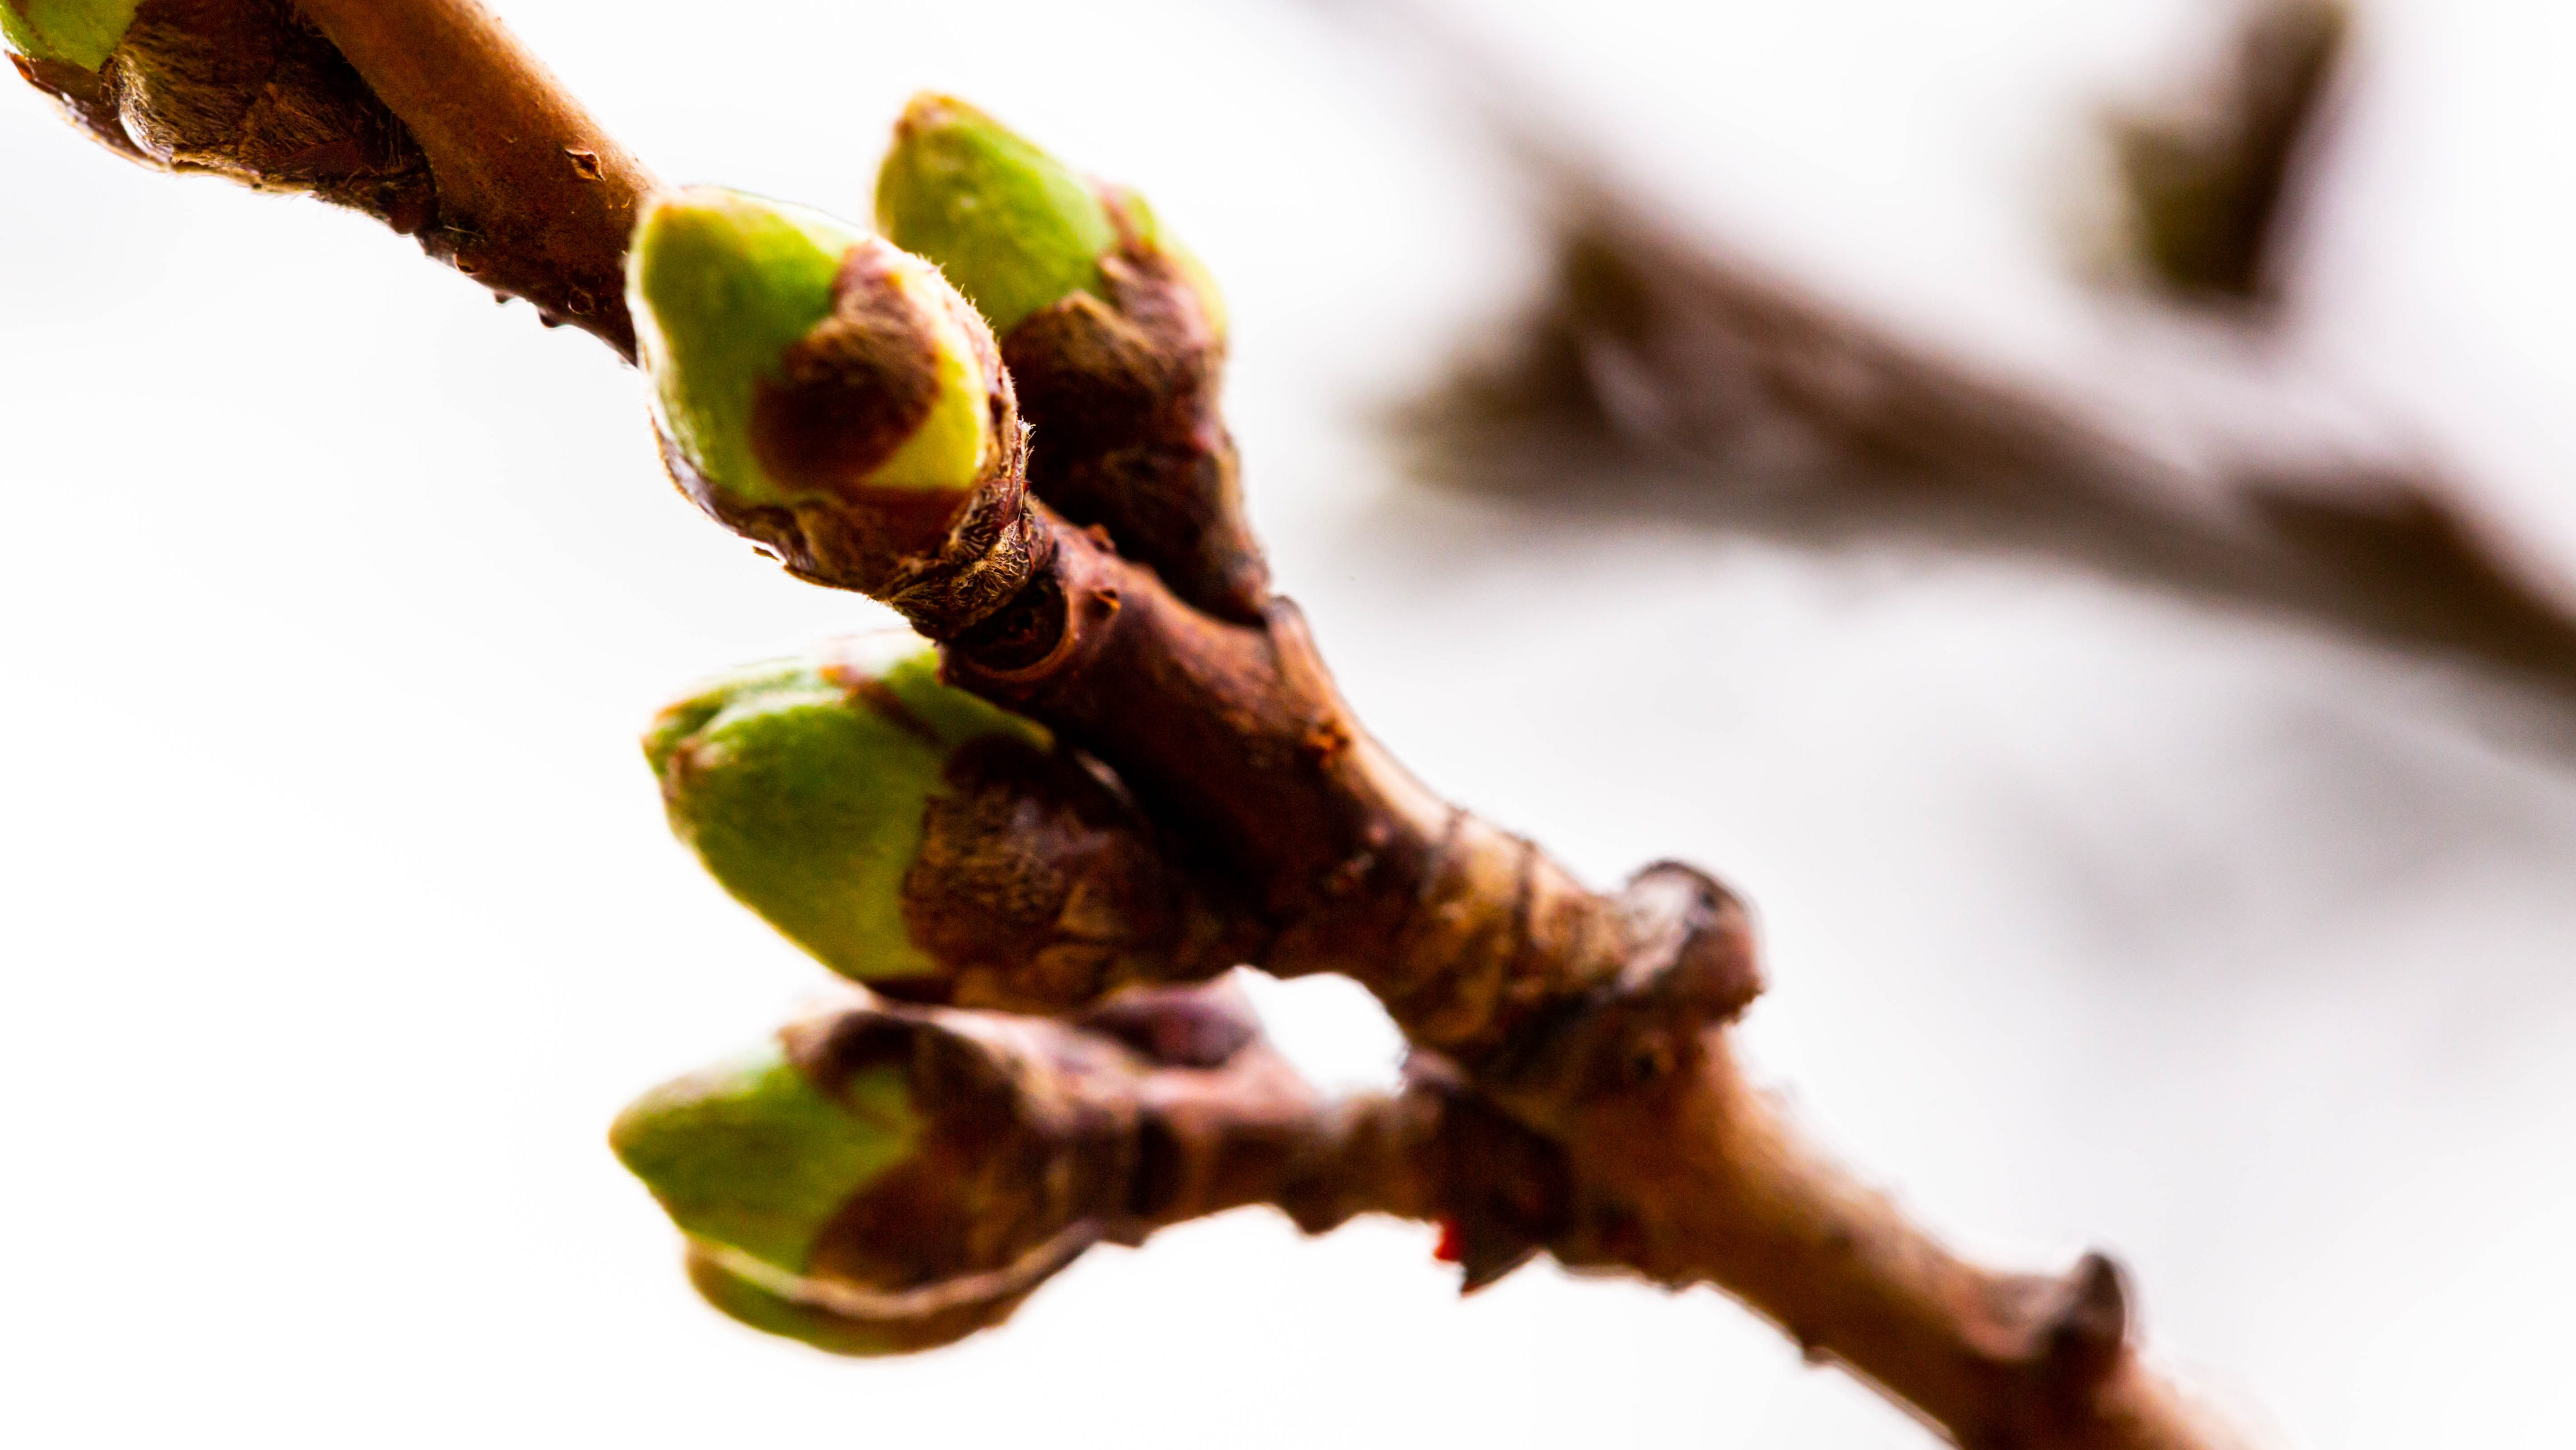 Cherry blossom buds in an early stage of bloom.